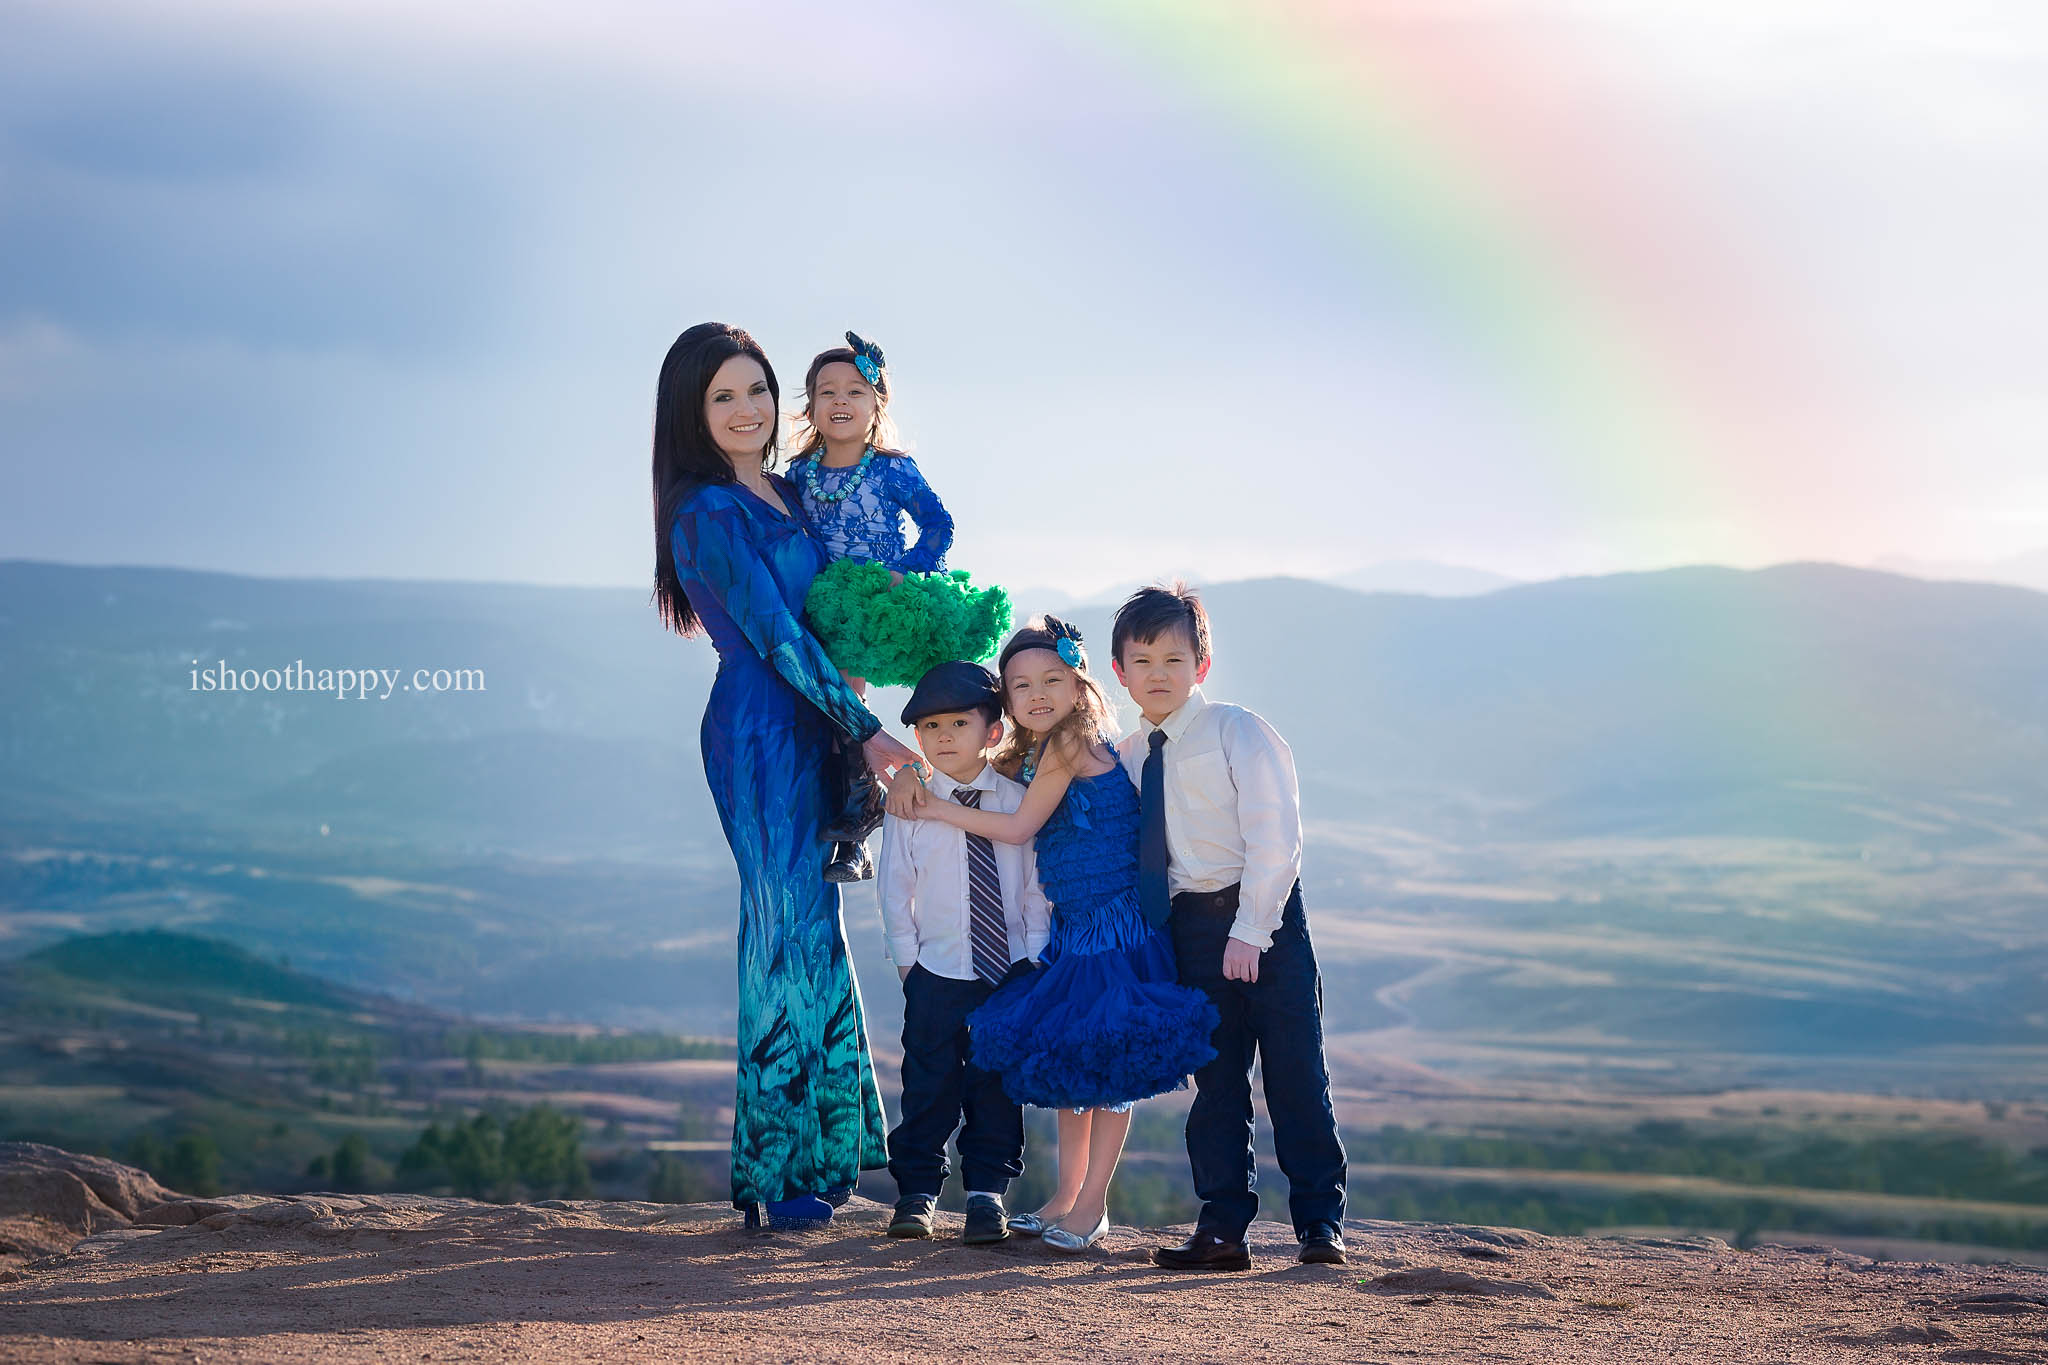 Denver Photography, Denver Maternity Photographer, Denver Family Photography, Denver Family Photographer, Family Photos Denver, Colorado Family Photography, Colorado Photos